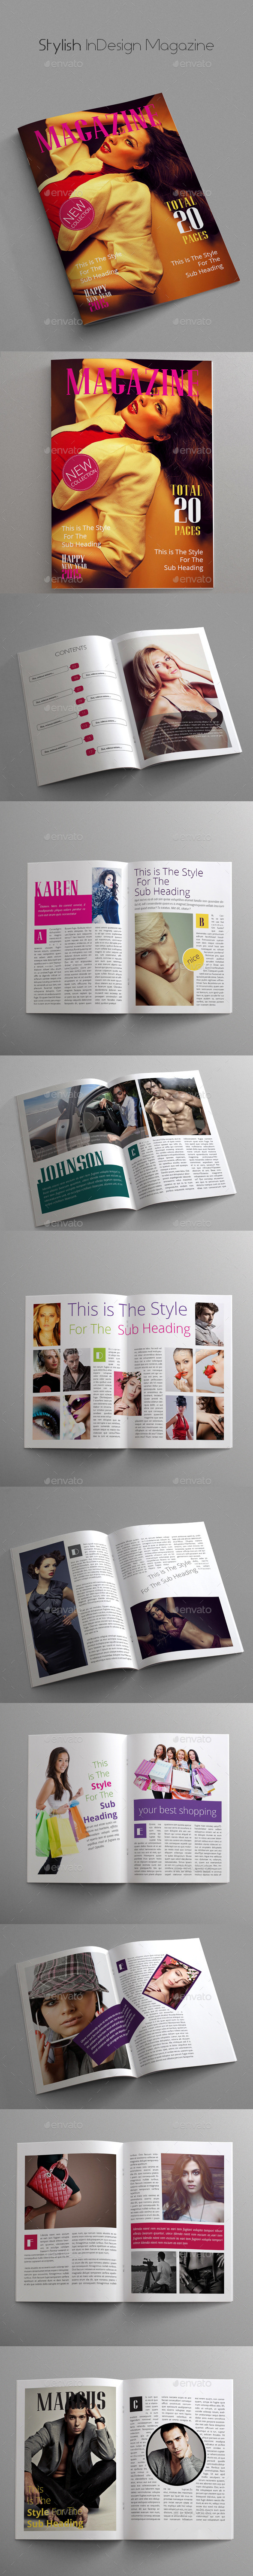 GraphicRiver Stylish InDesign Magazine 9954126